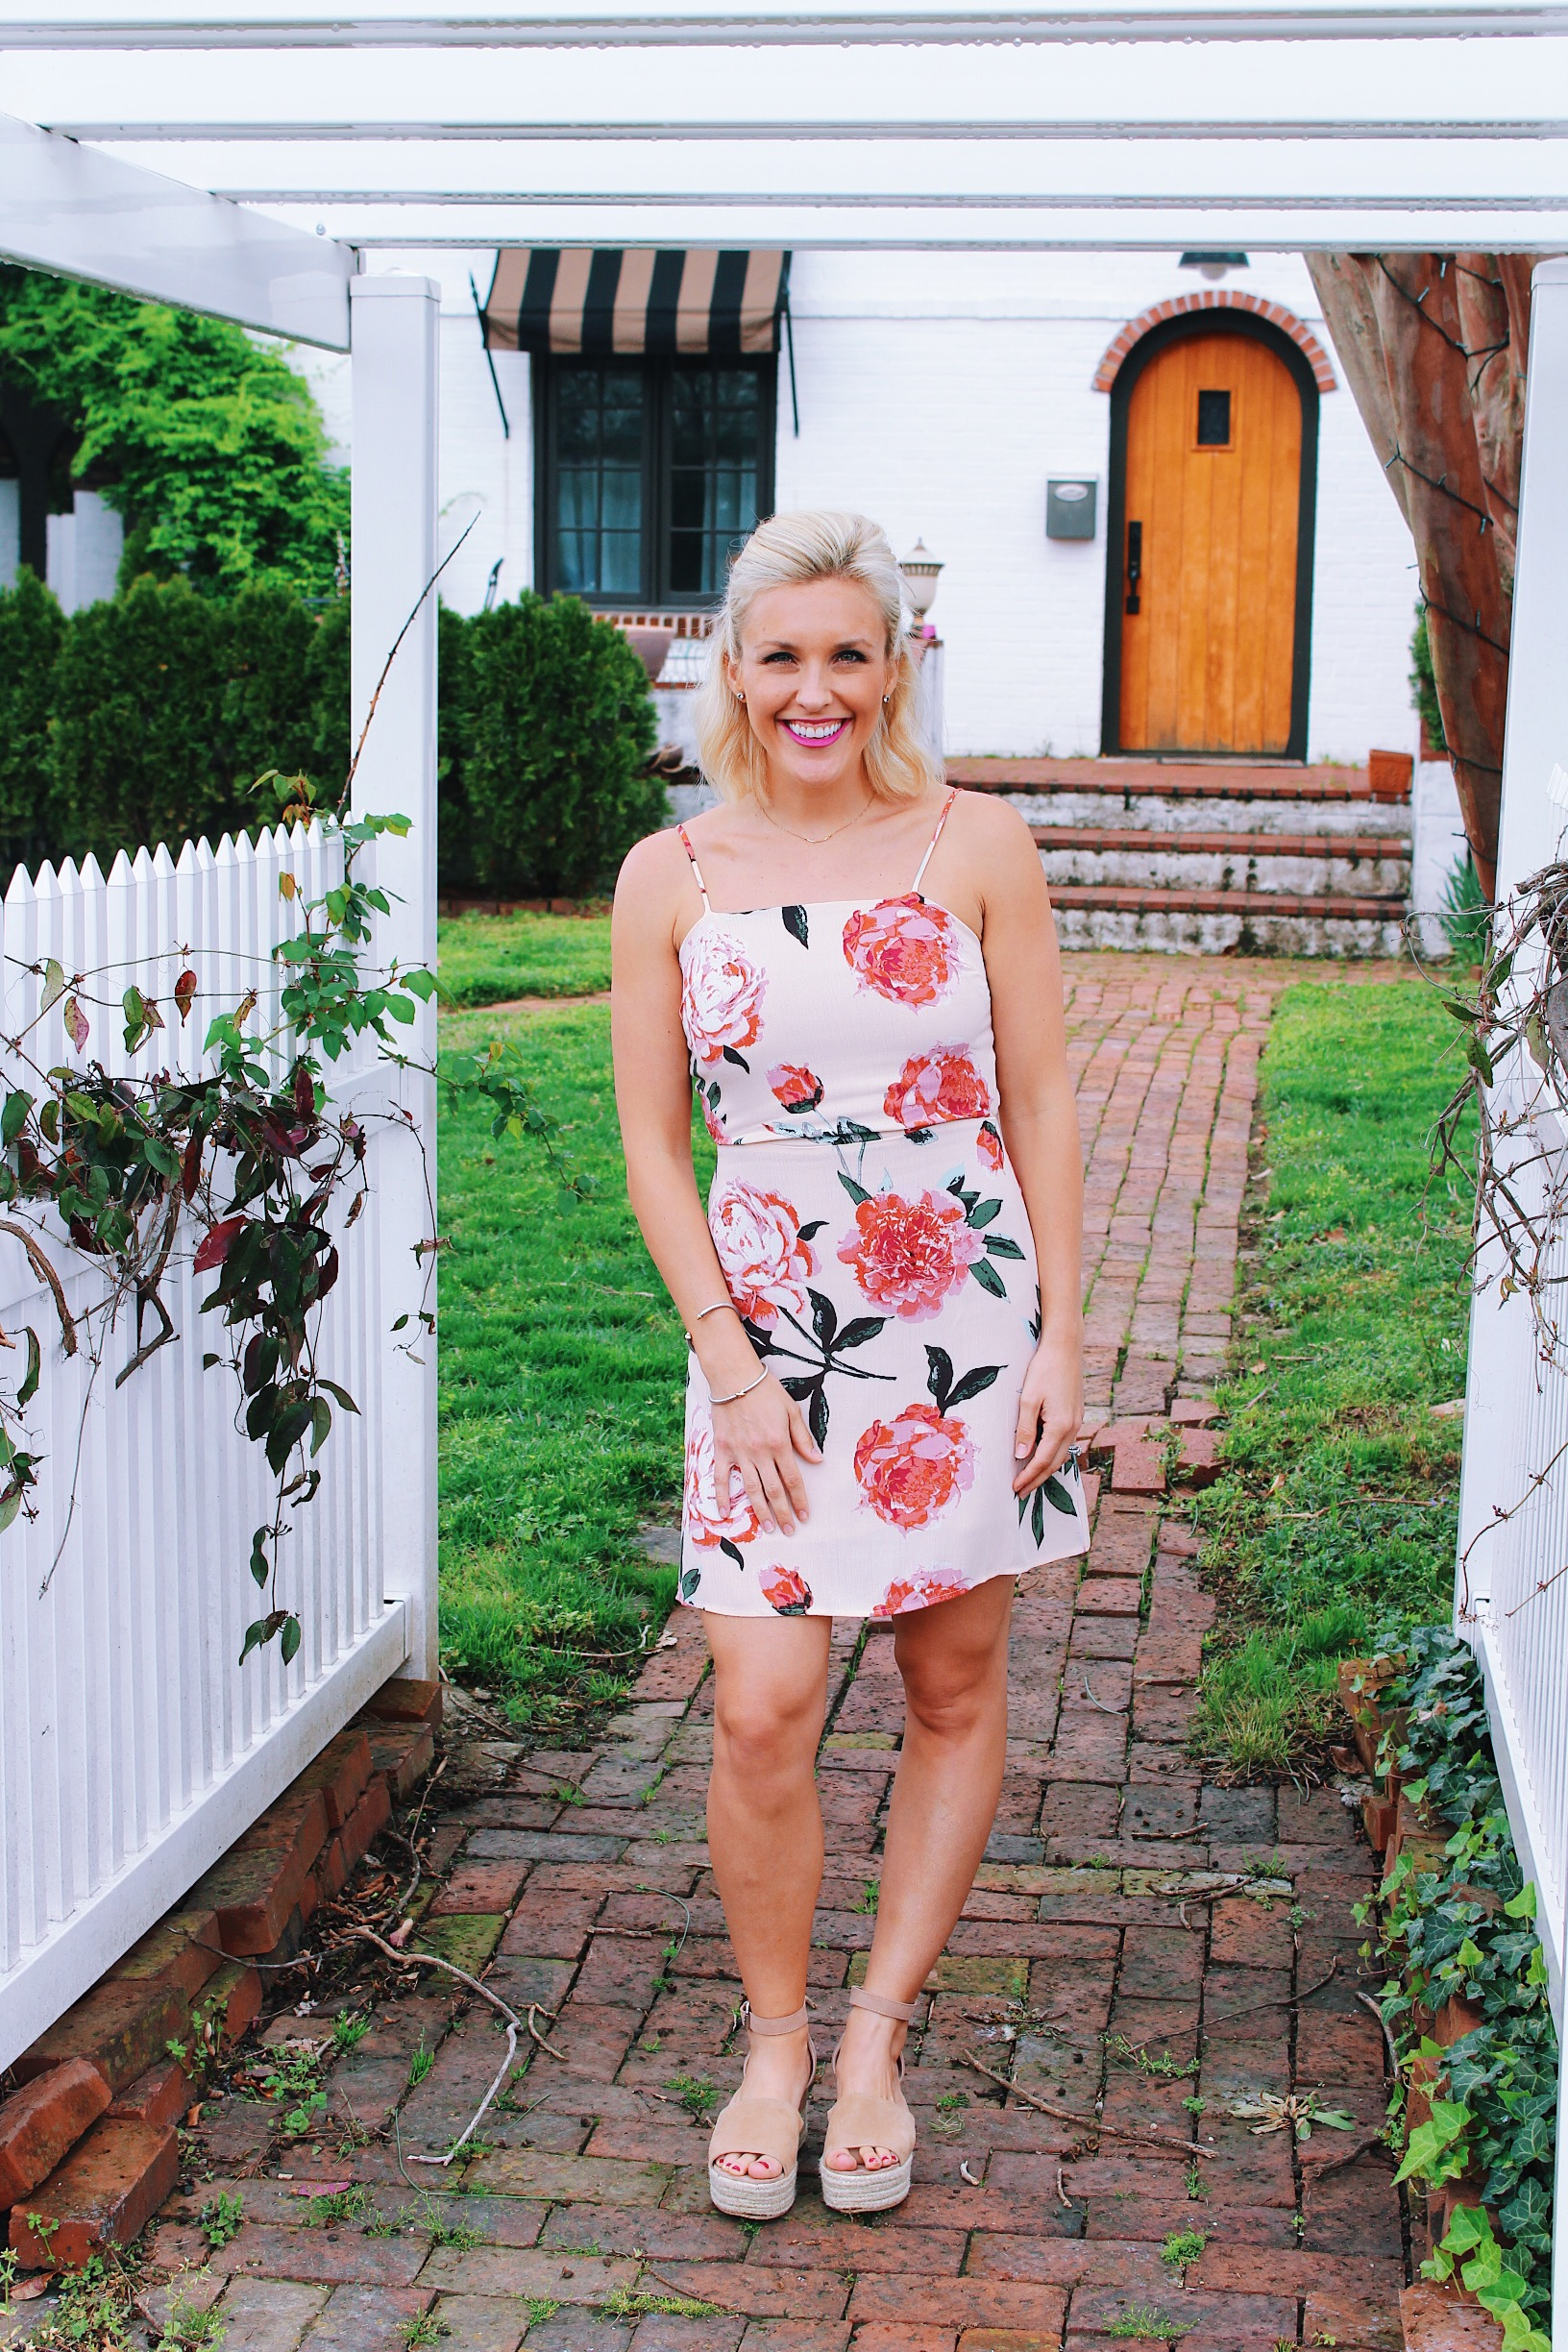 Floral Dress - All in with Angie